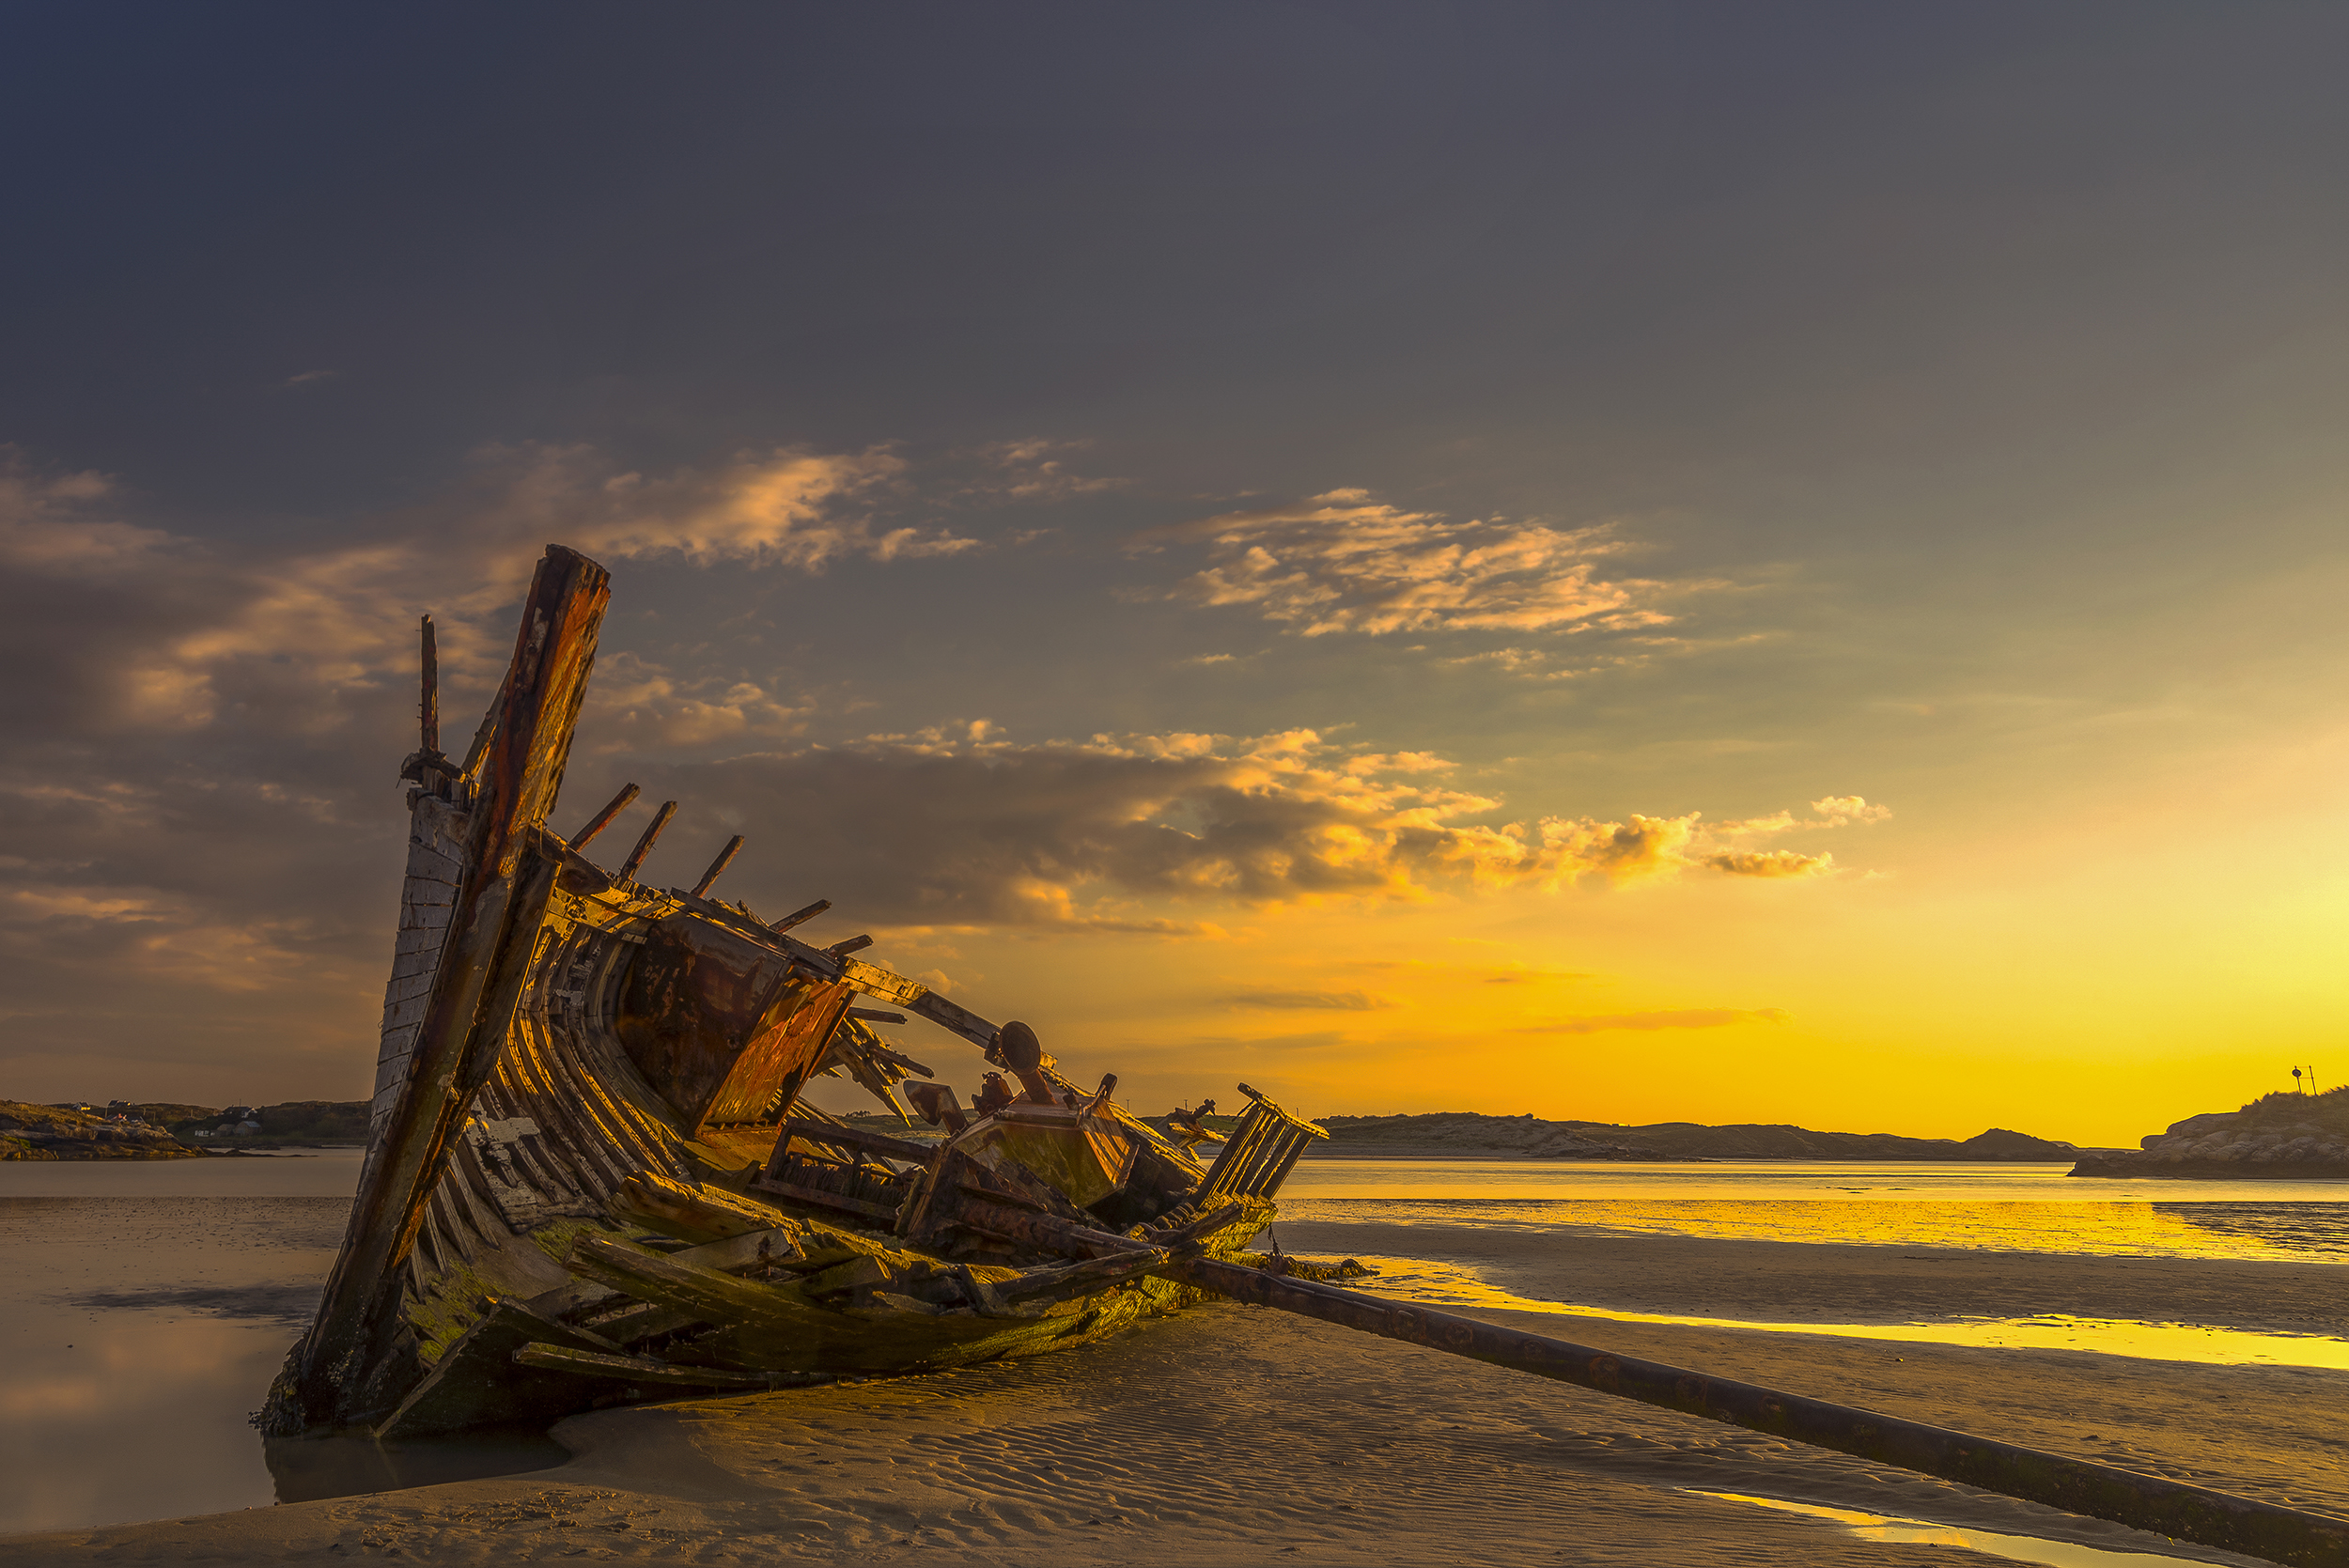 Bad Eddie Shipwreck, Maghera Beach, Donegal